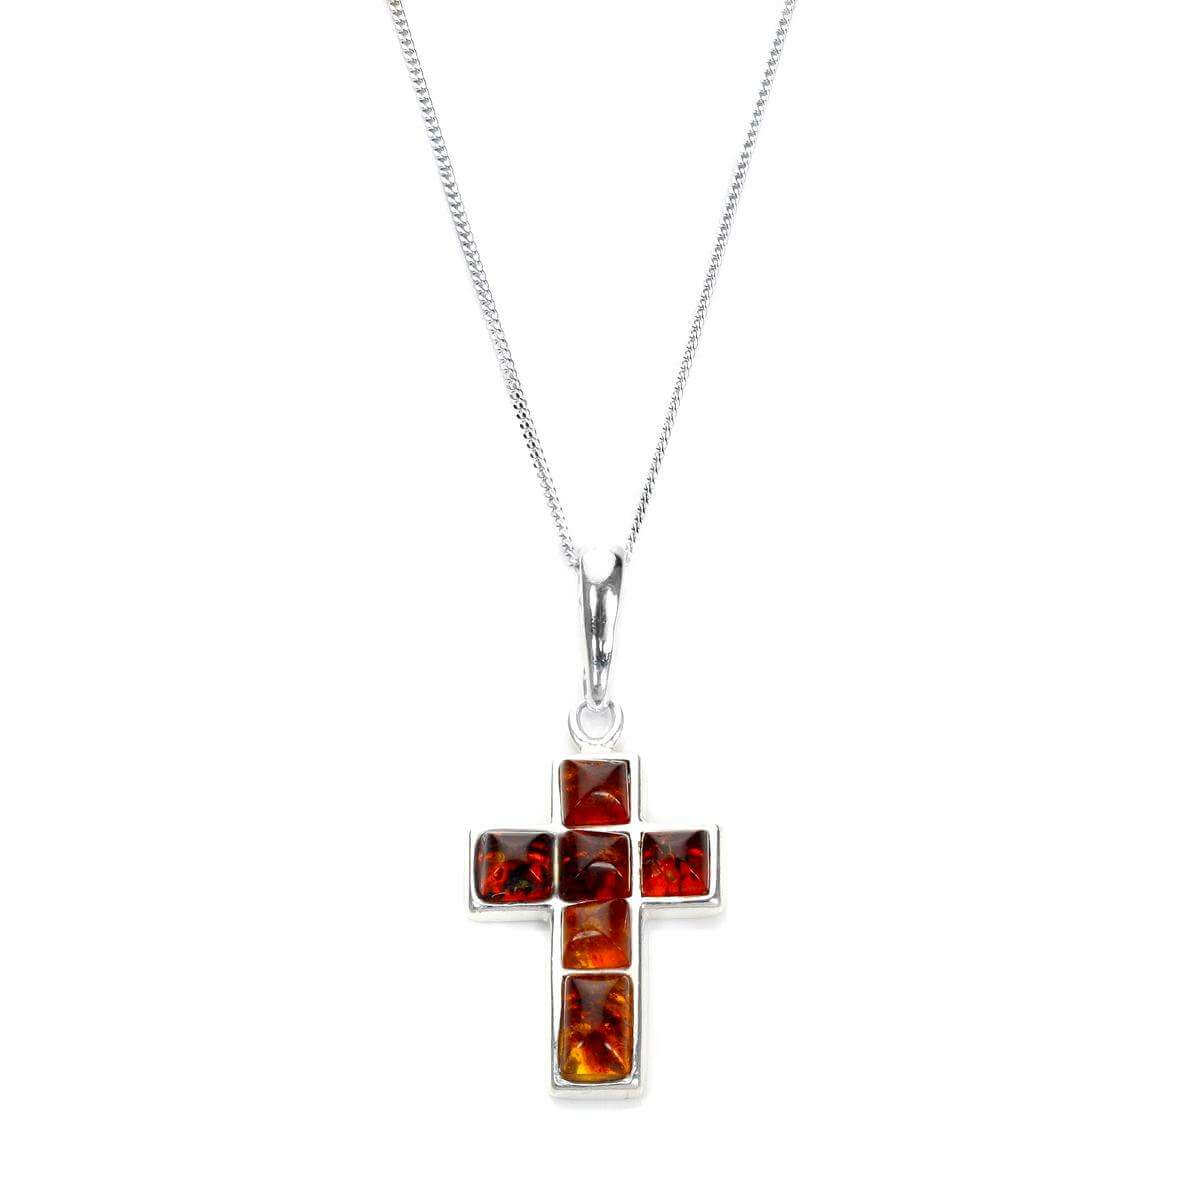 Sterling silver baltic amber cross pendant sayerslondon sterling silver baltic amber cross pendant mozeypictures Gallery